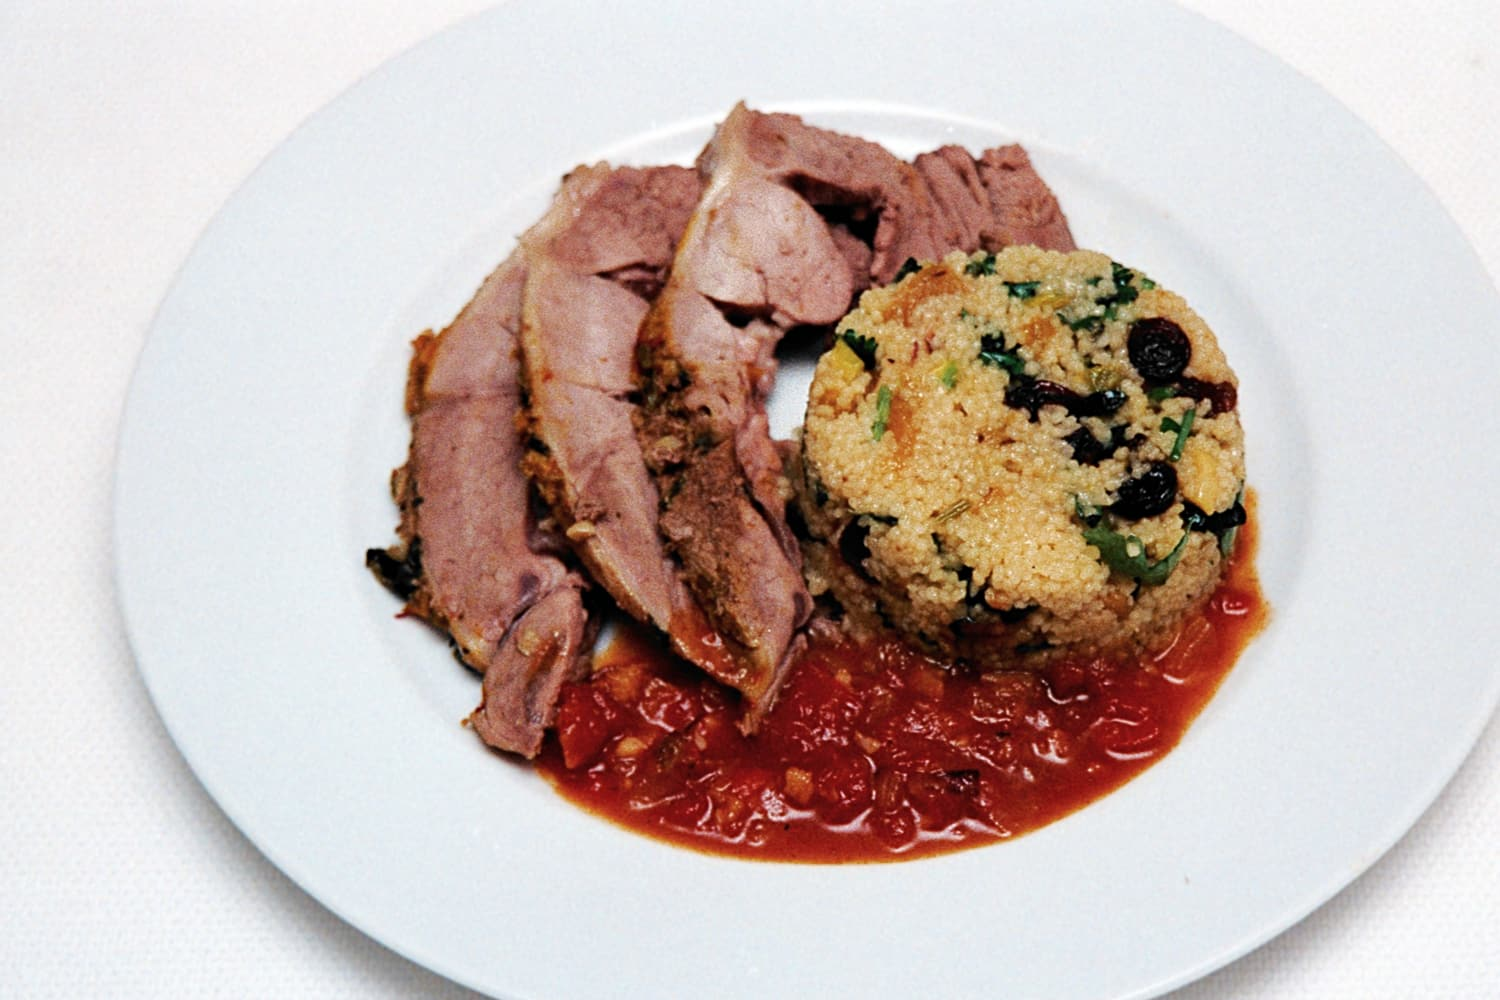 Steamed North African Leg of Lamb with Fruit Cous Cous served